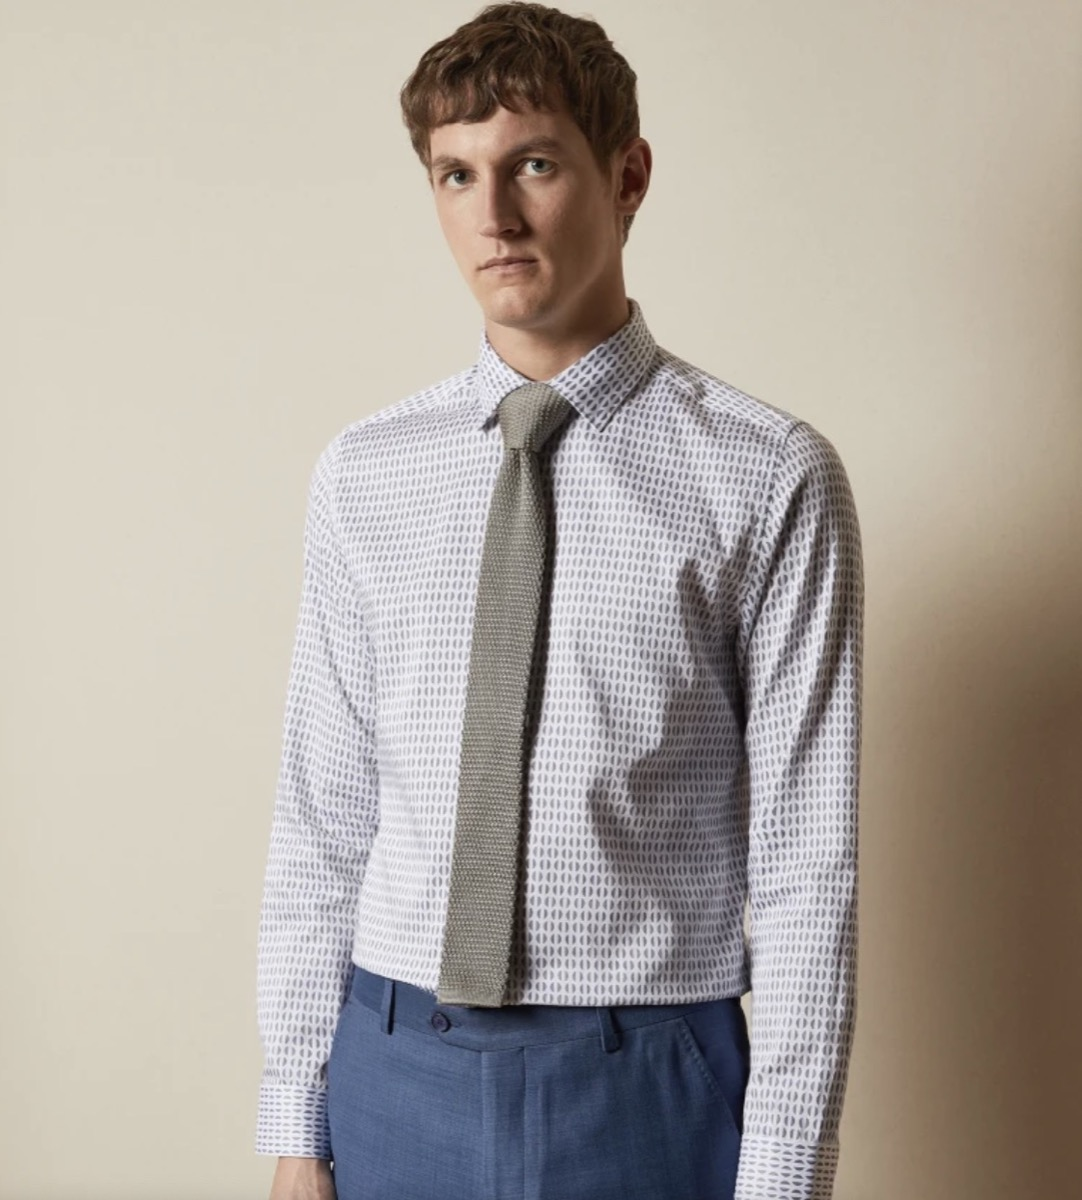 young white man in blue button down shirt and tie